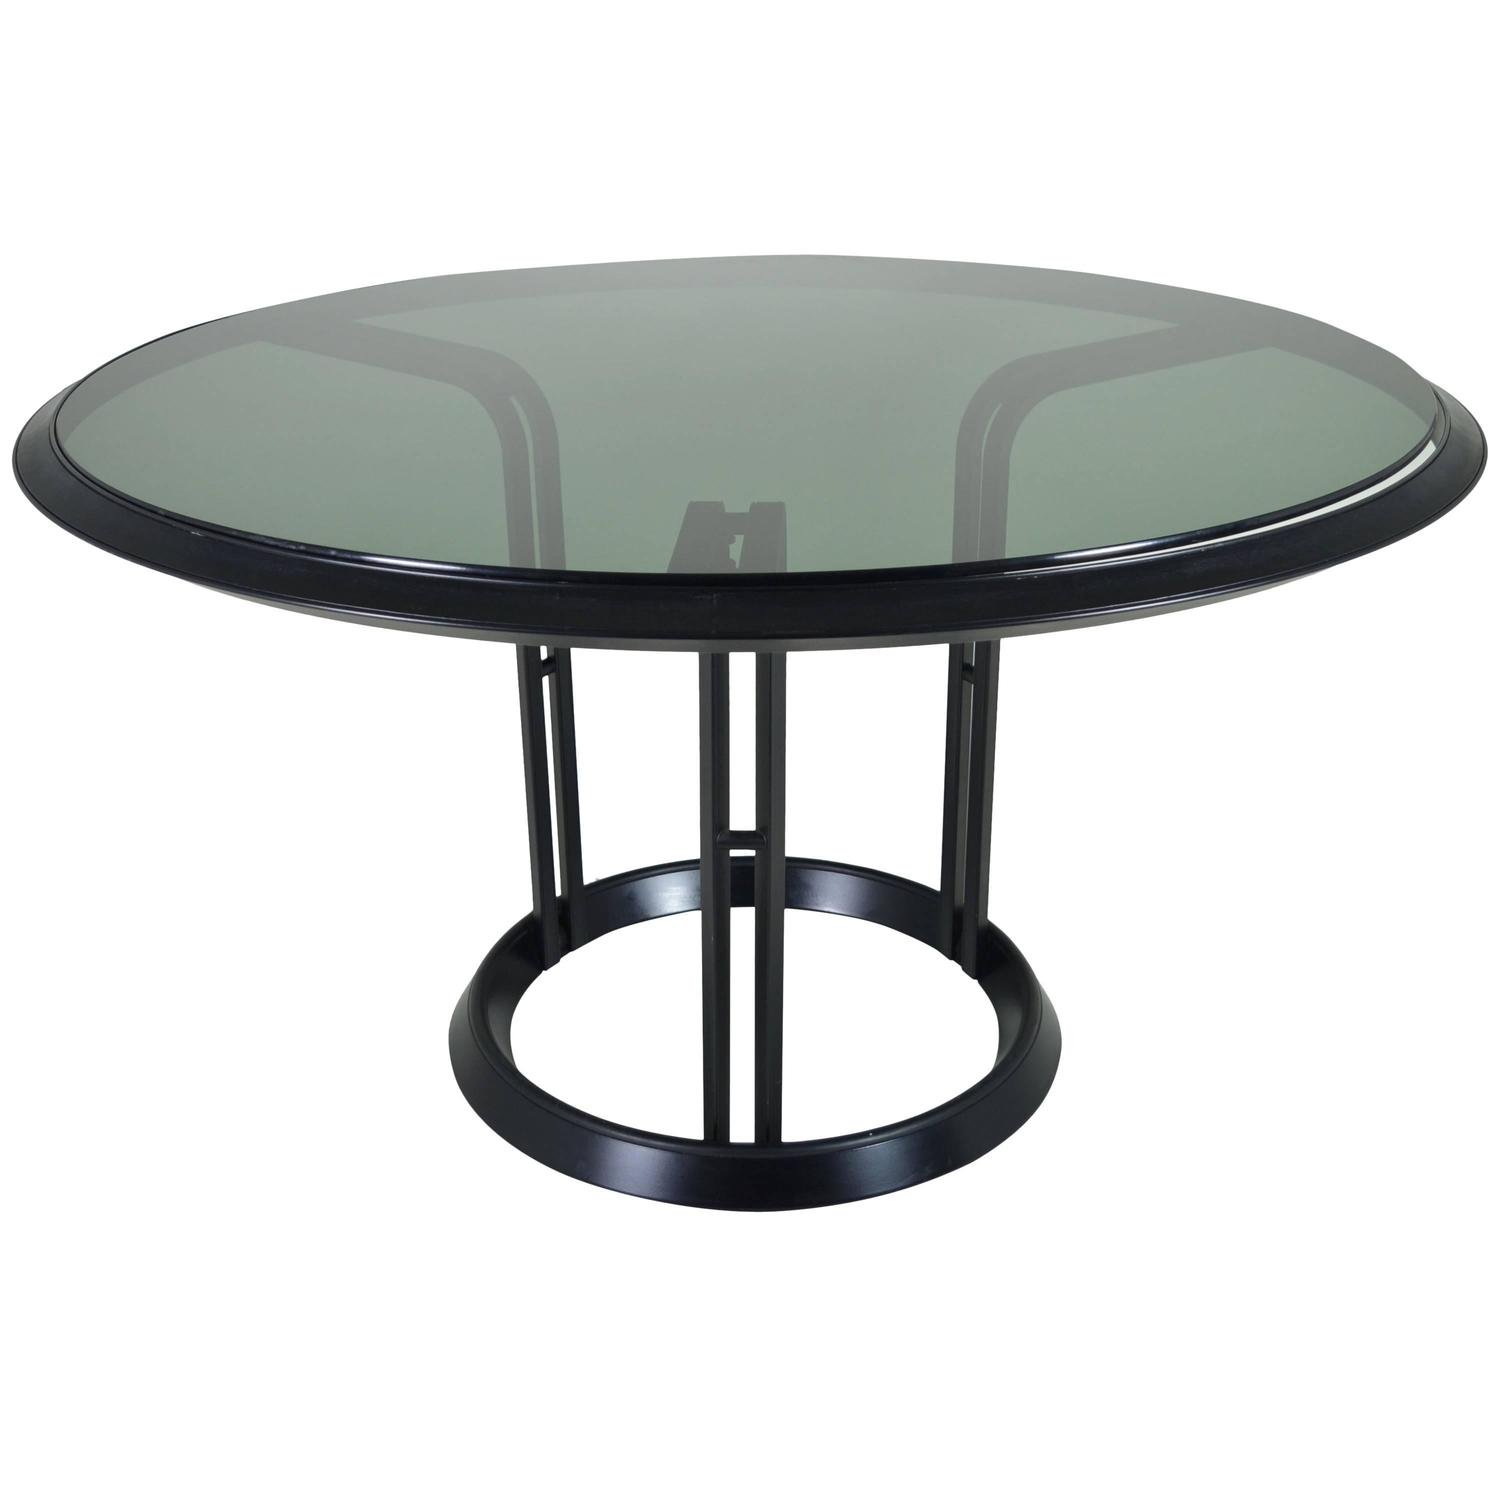 Italian modern center table circa 1970s at 1stdibs for Table furniture